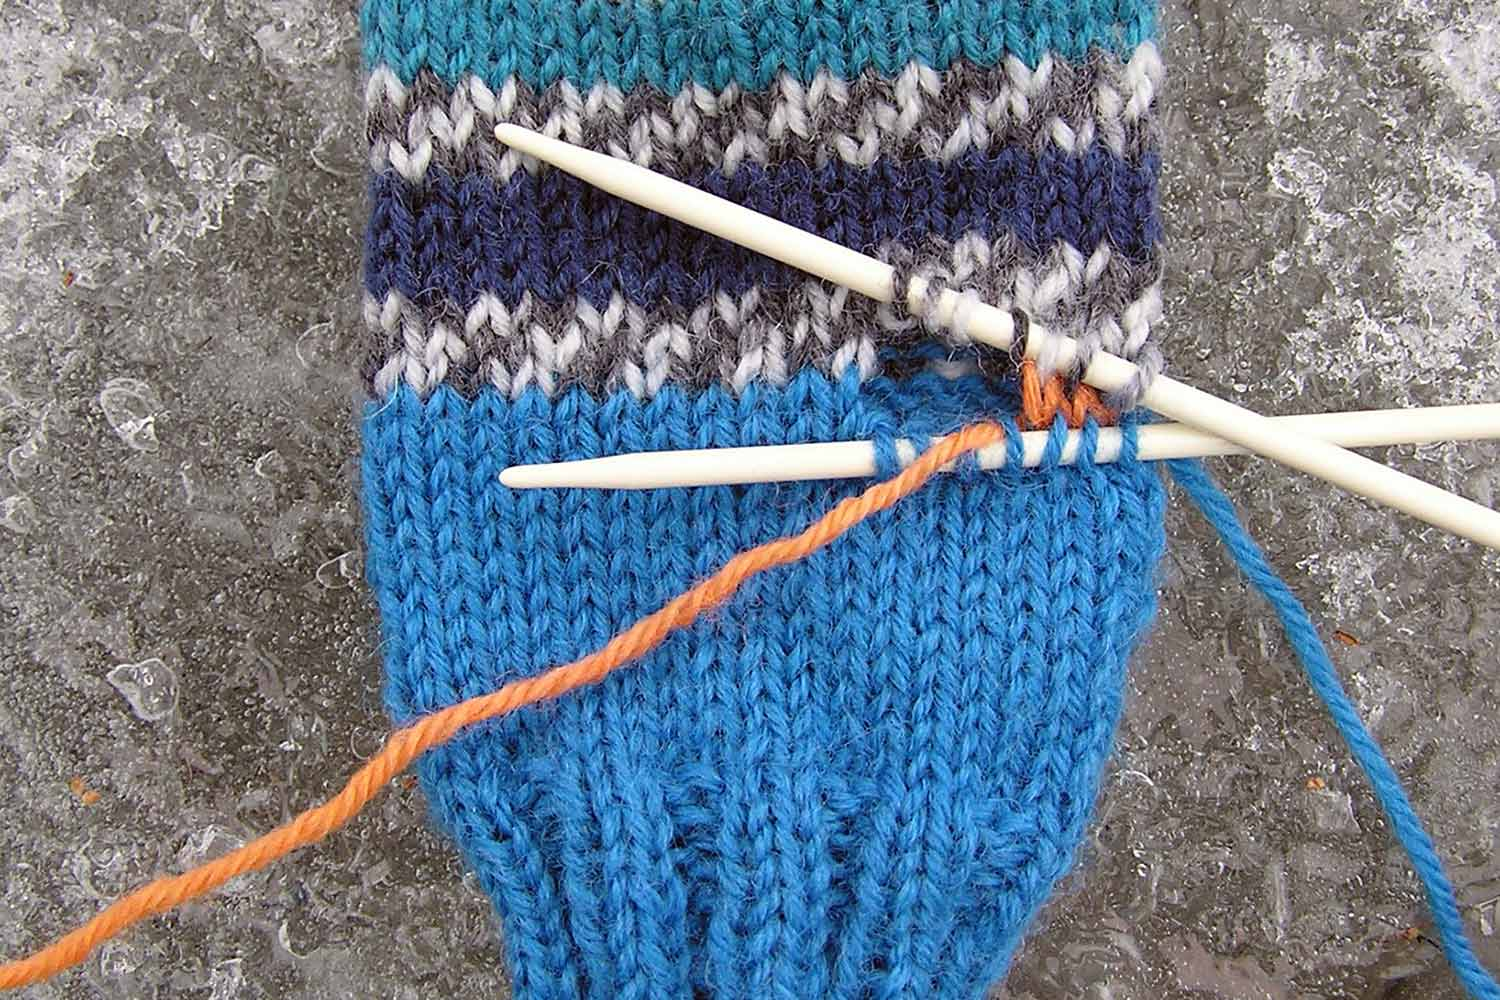 Half of orange waste yarn stitches have been unpicked with two separate needles holding stitches above and below waste yarn.